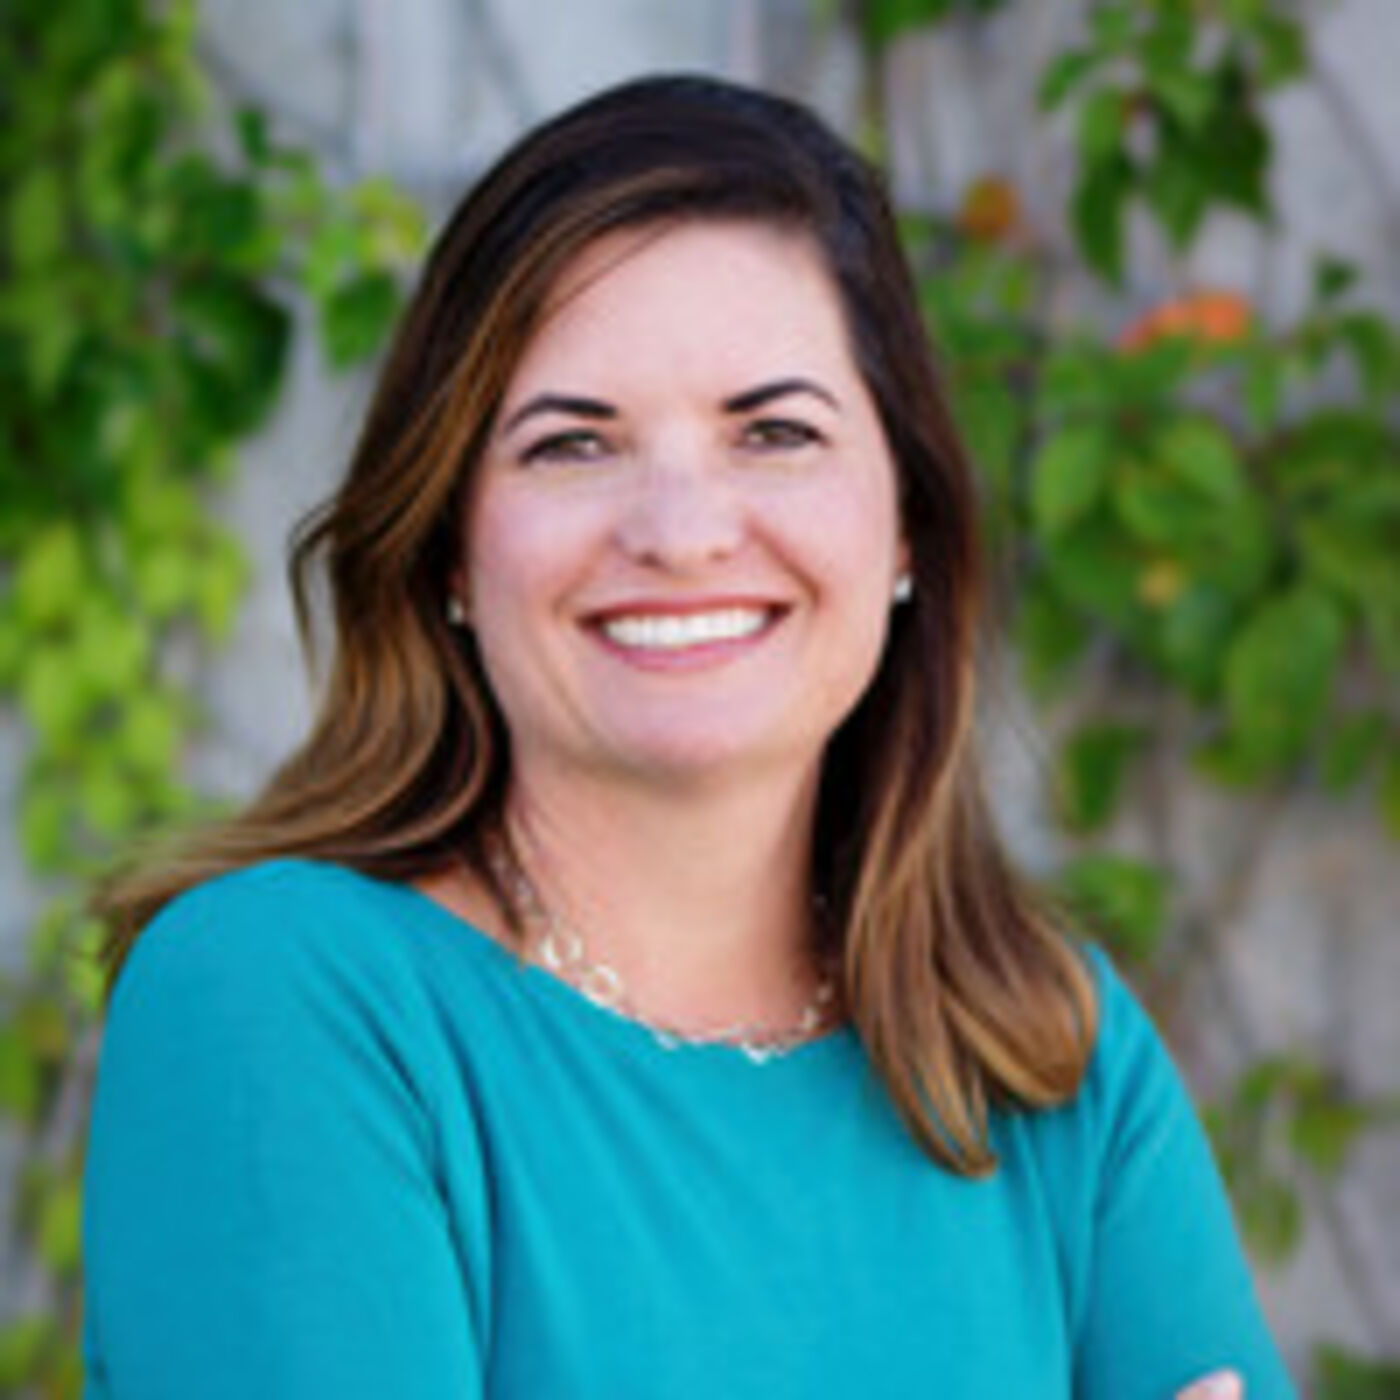 Aimee Blenker, Arts and Culture Manager for the Bradenton Area Convention and Visitors Bureau, Joins the Club